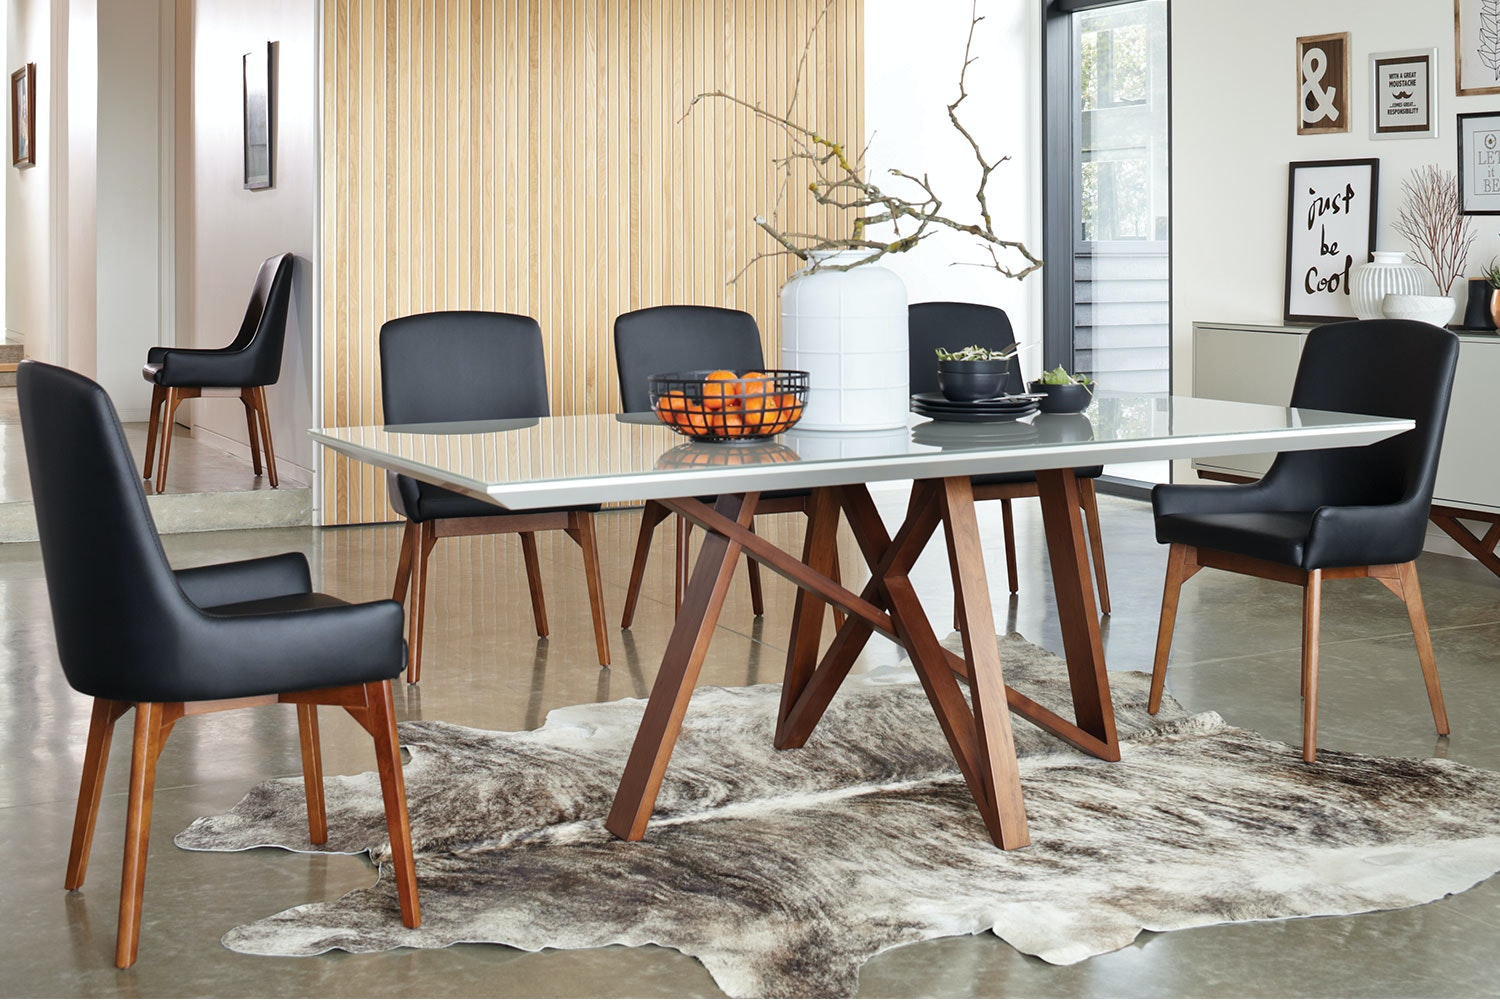 Monte Carlo 7 Piece Dining Suite by Insato Furniture